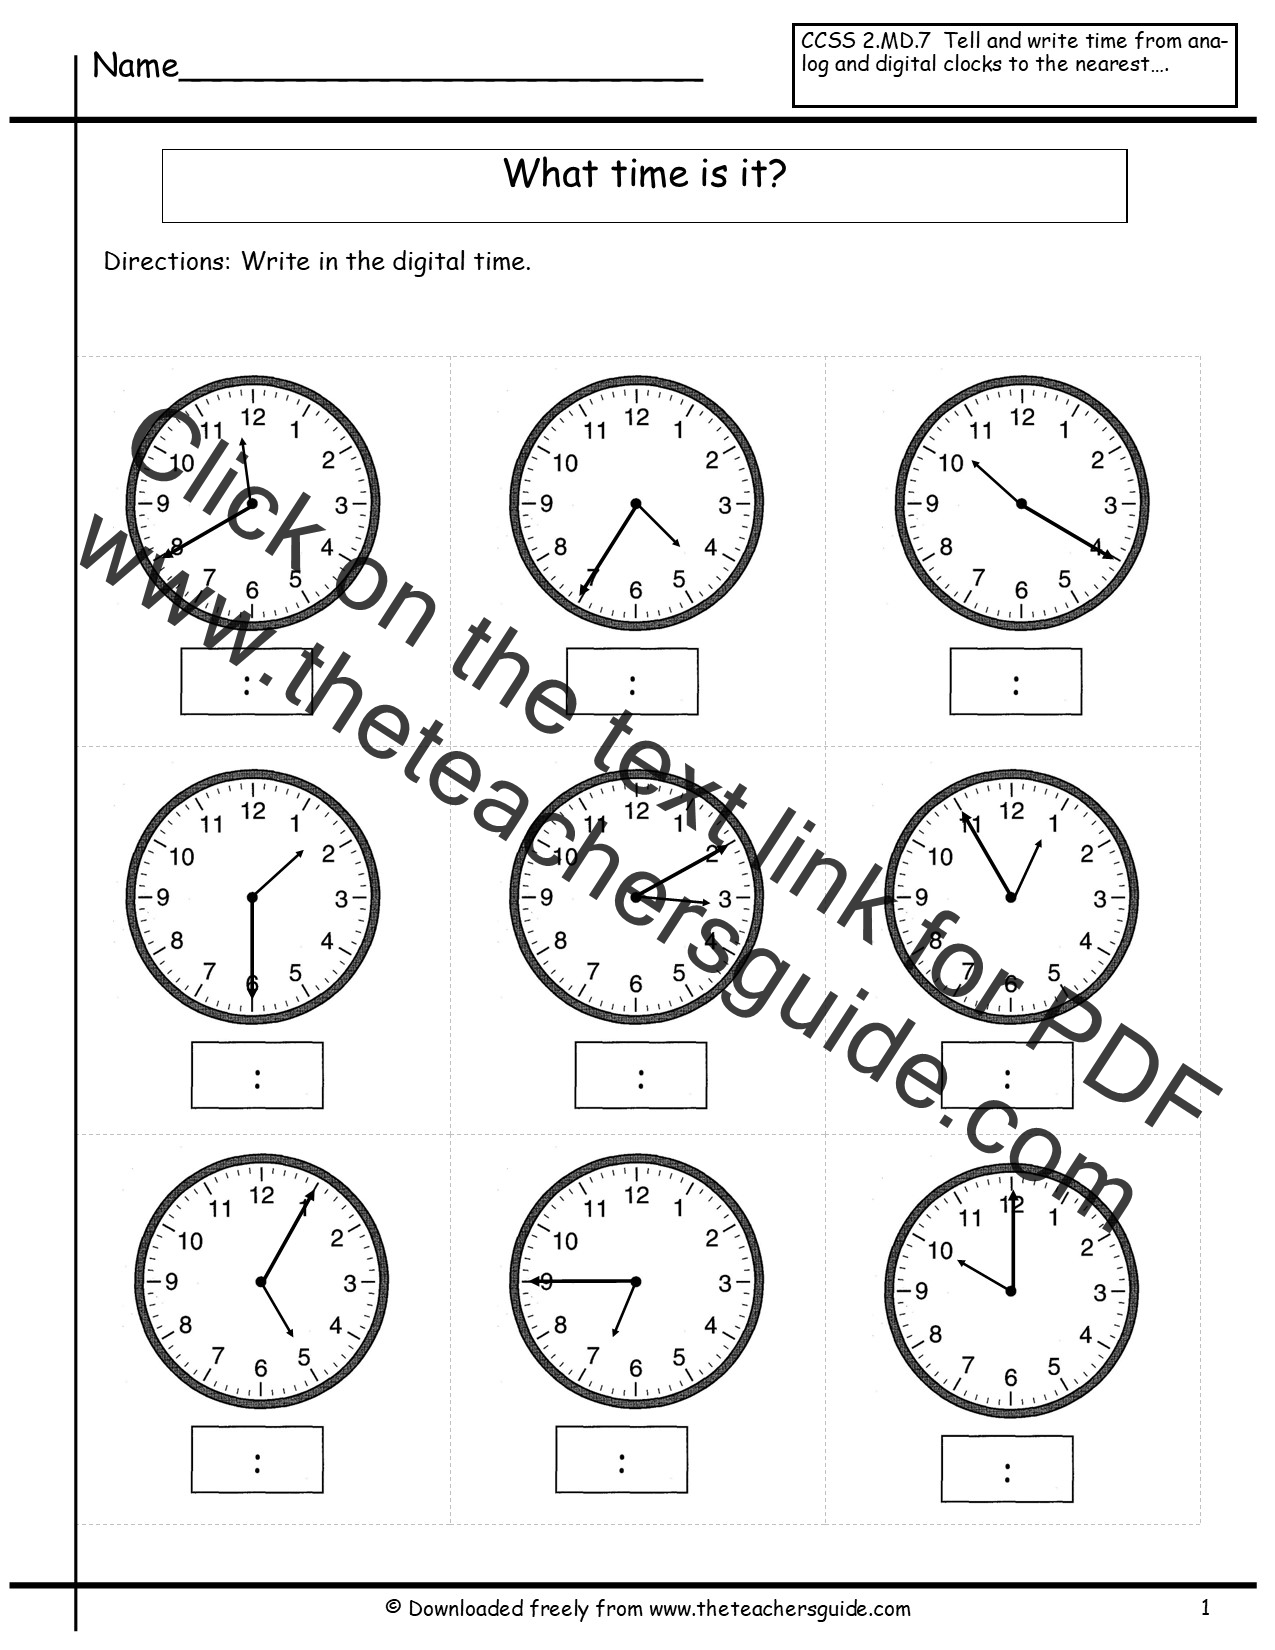 worksheet Time Worksheet telling time worksheets from the teachers guide to nearest five minutes worksheet